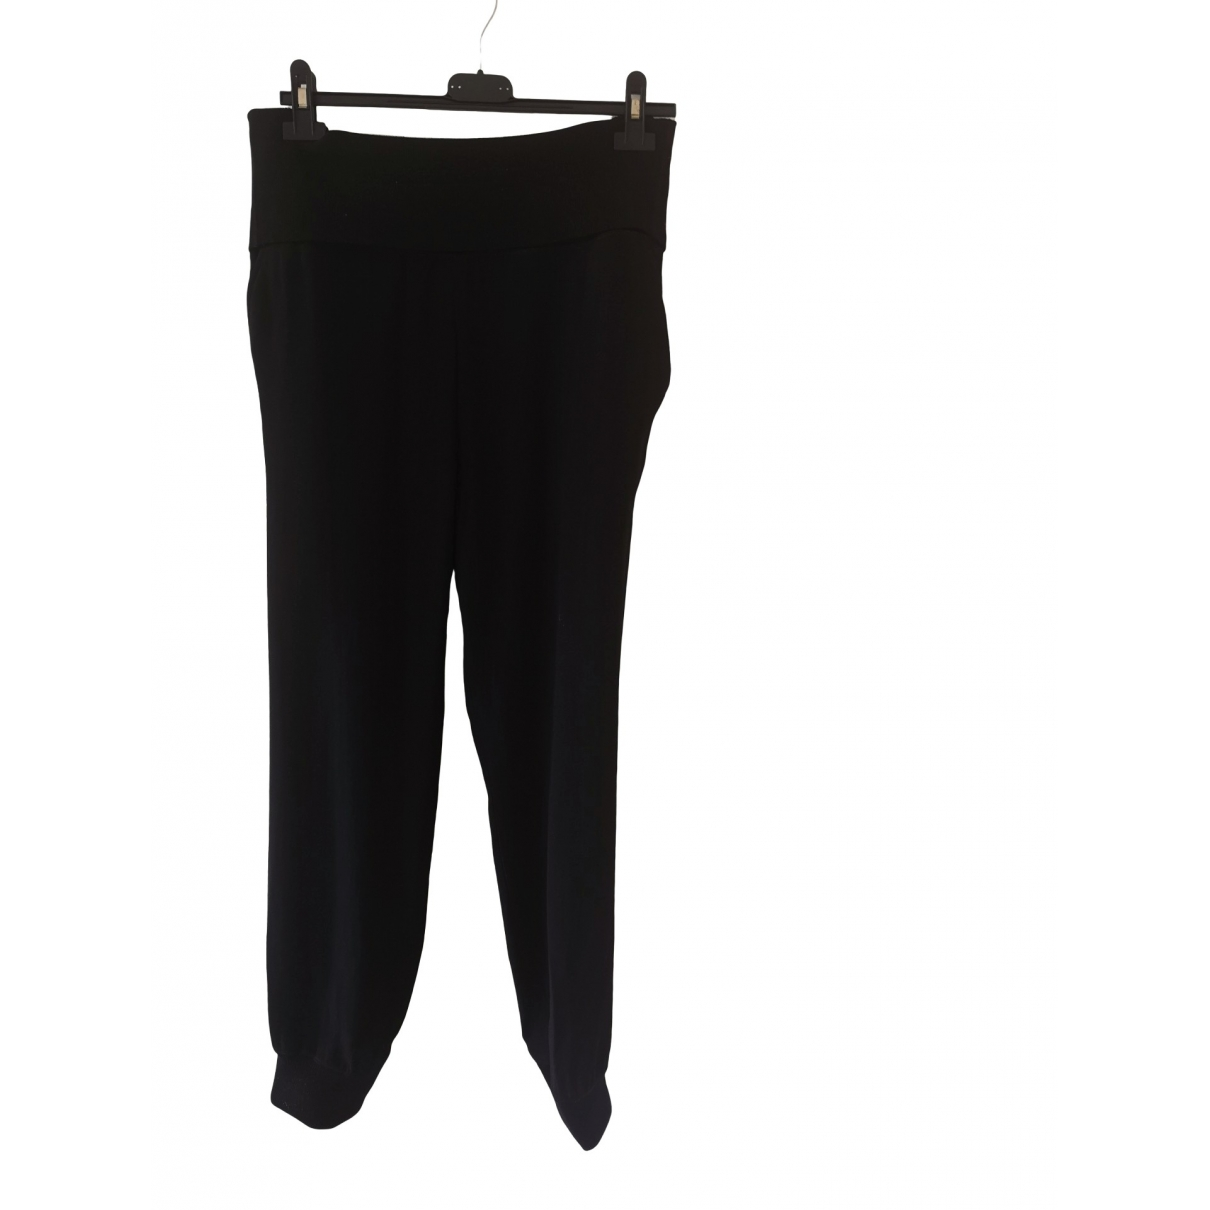 Theory \N Black Trousers for Women L International